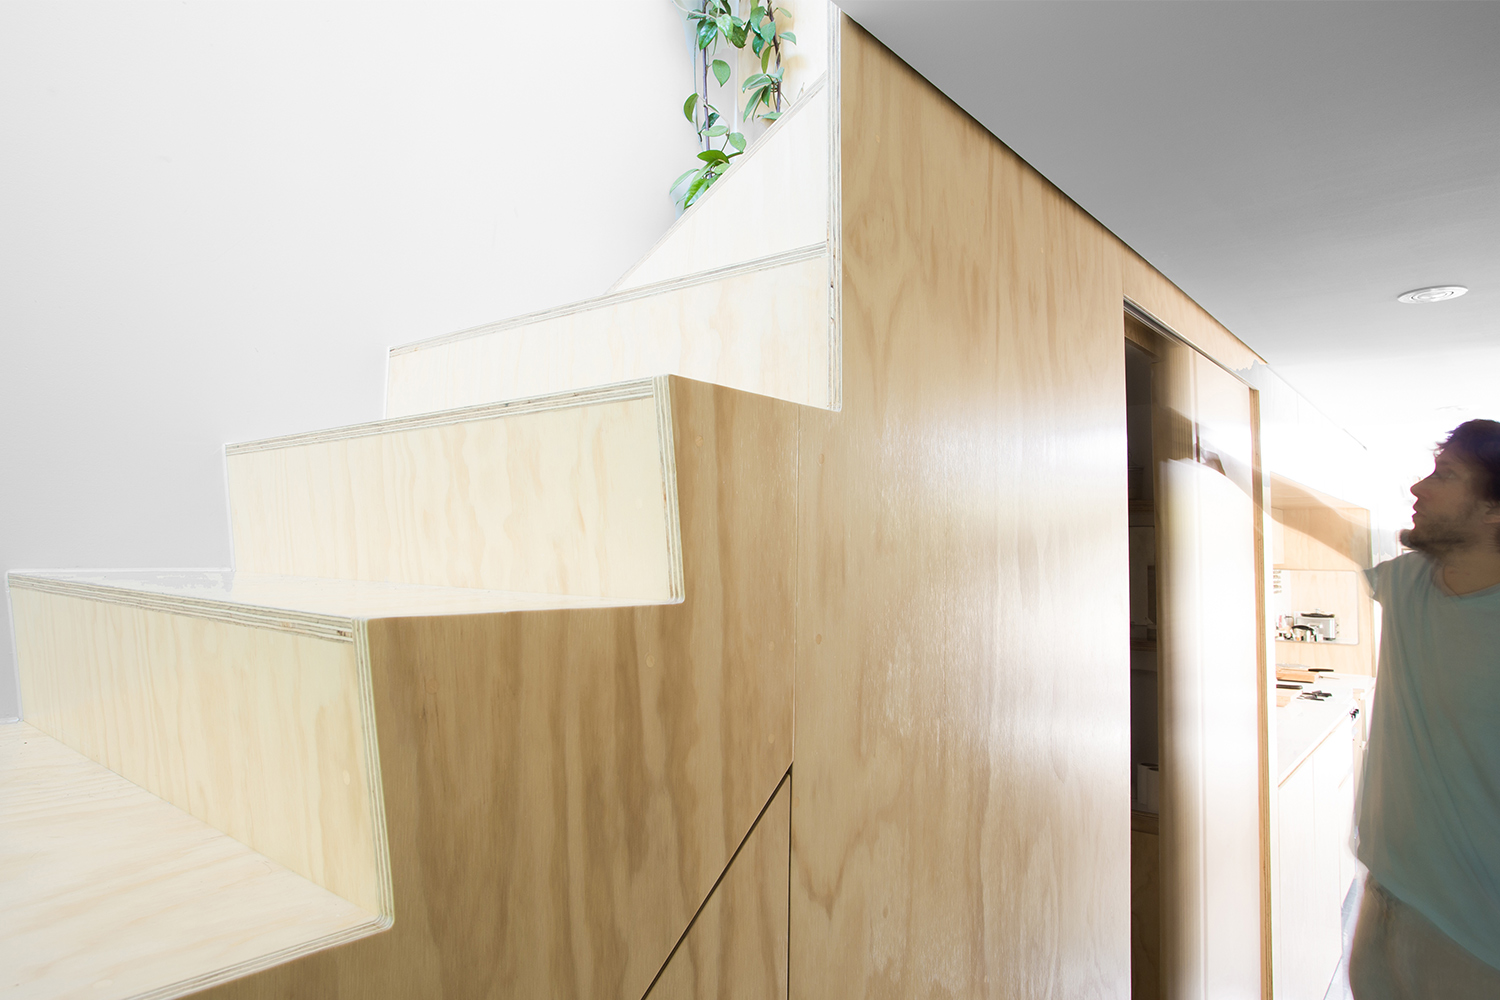 Creation of a new staircase in Russian cherry plywood. Storage concealed under the steps with sliding door.